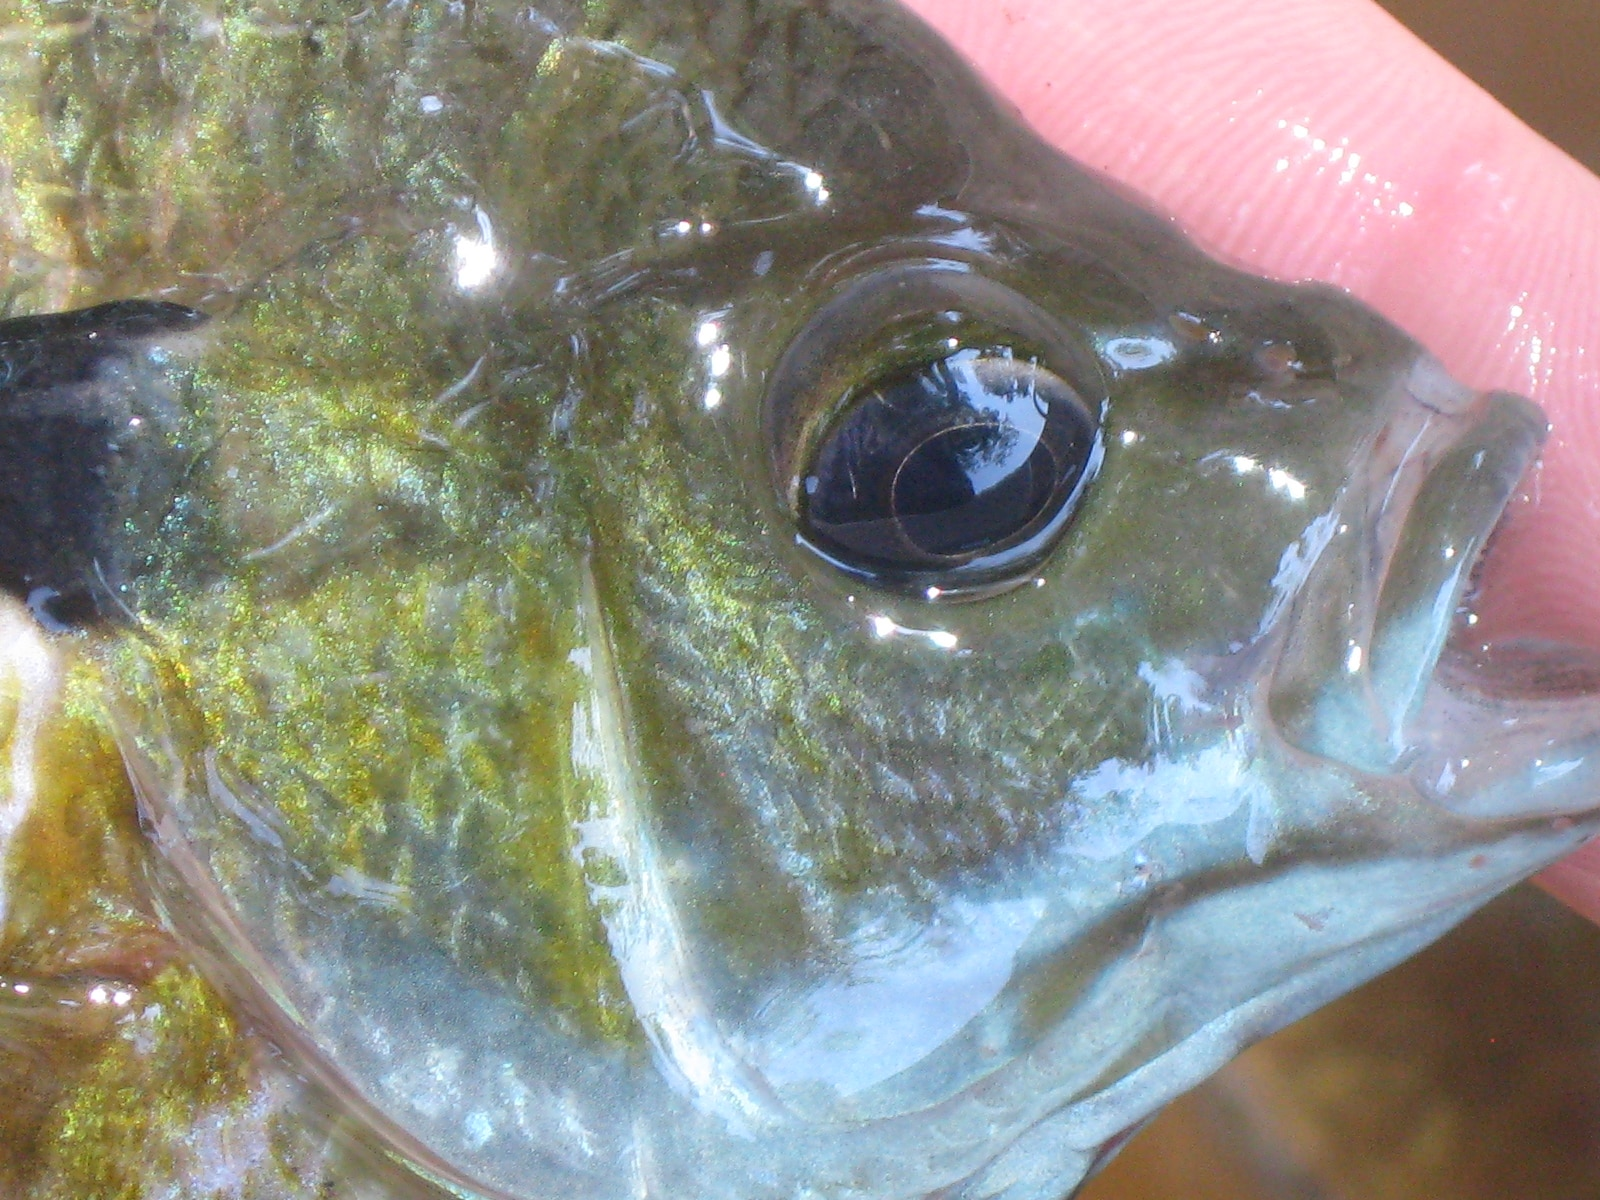 bluegill fishing with a fly rod, Fly Fishing Bait